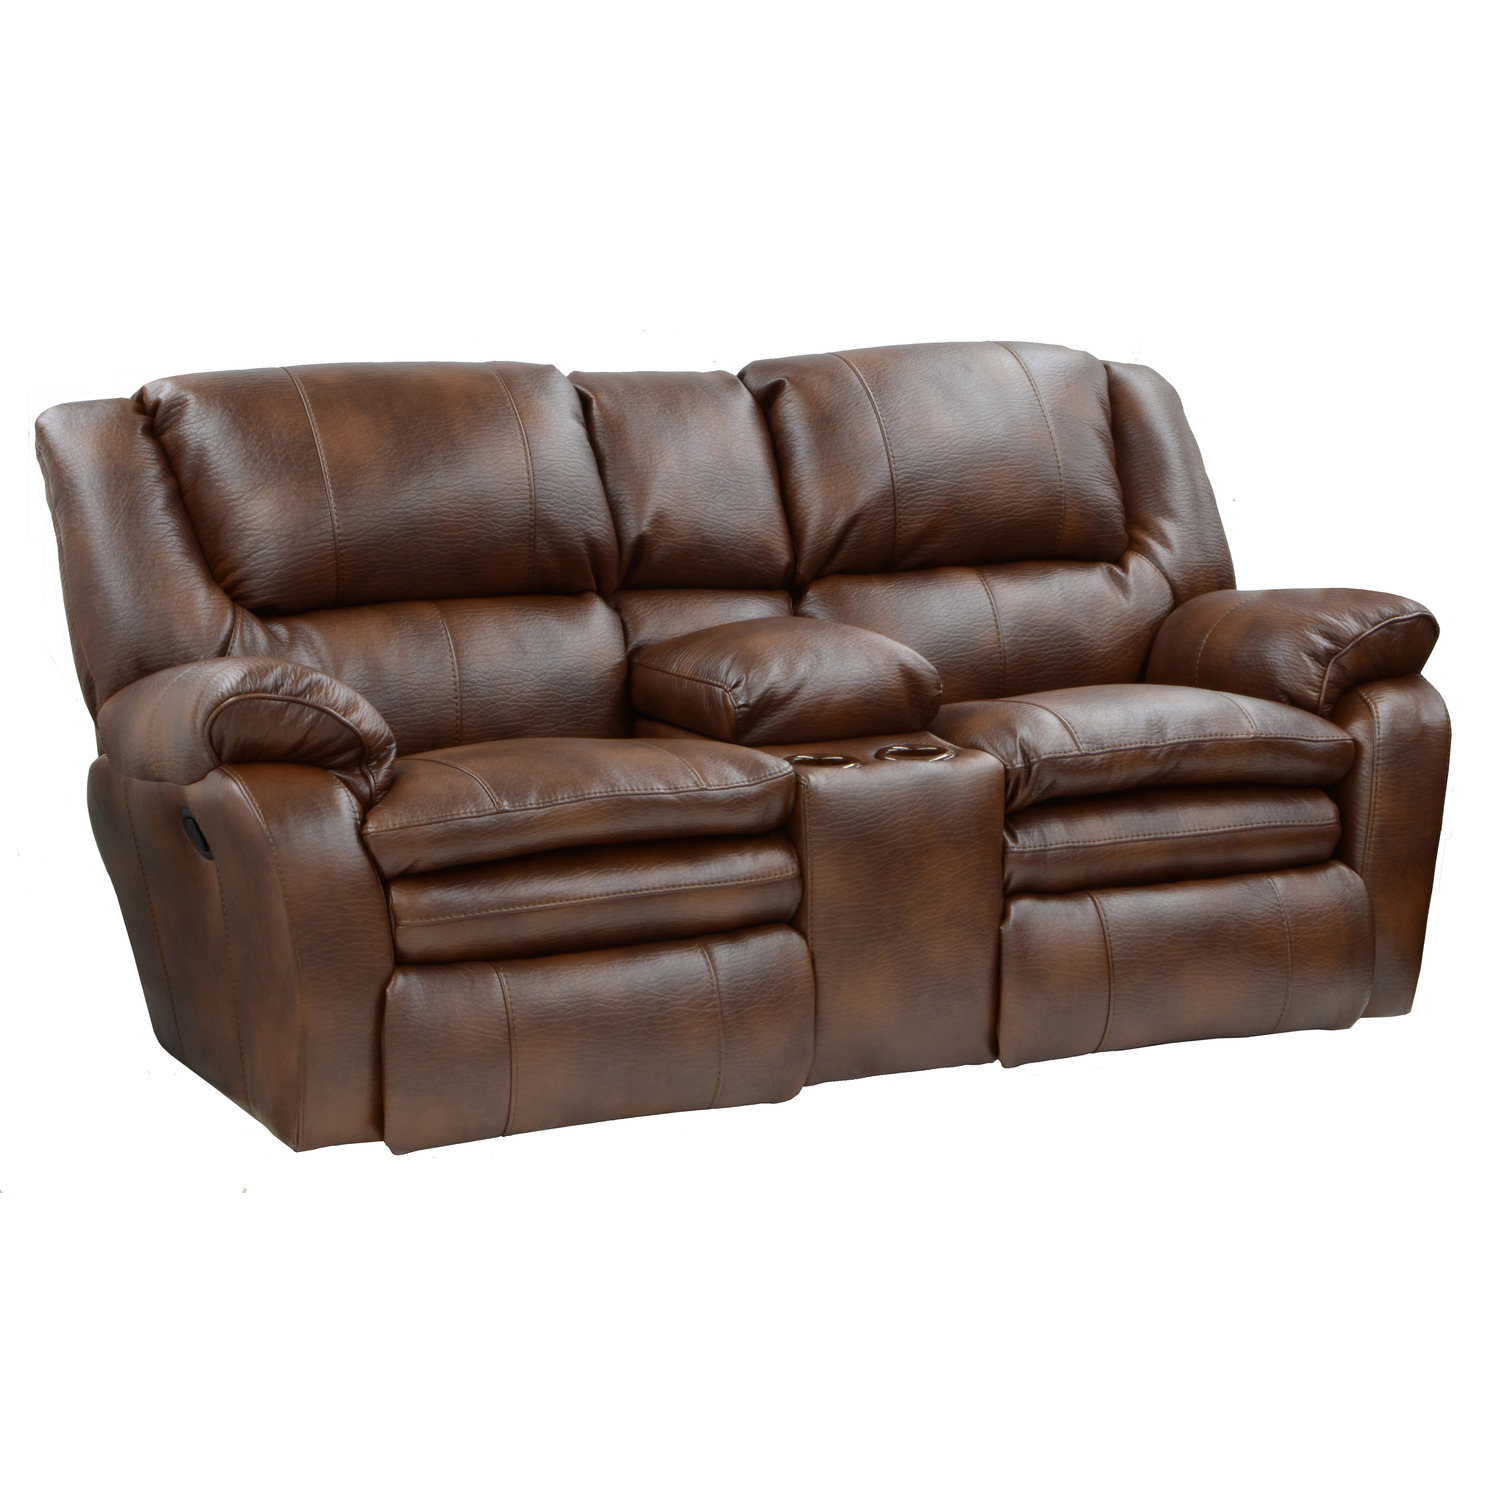 Catnapper Russell Leather Console Loveseat By Oj Commerce 1 1